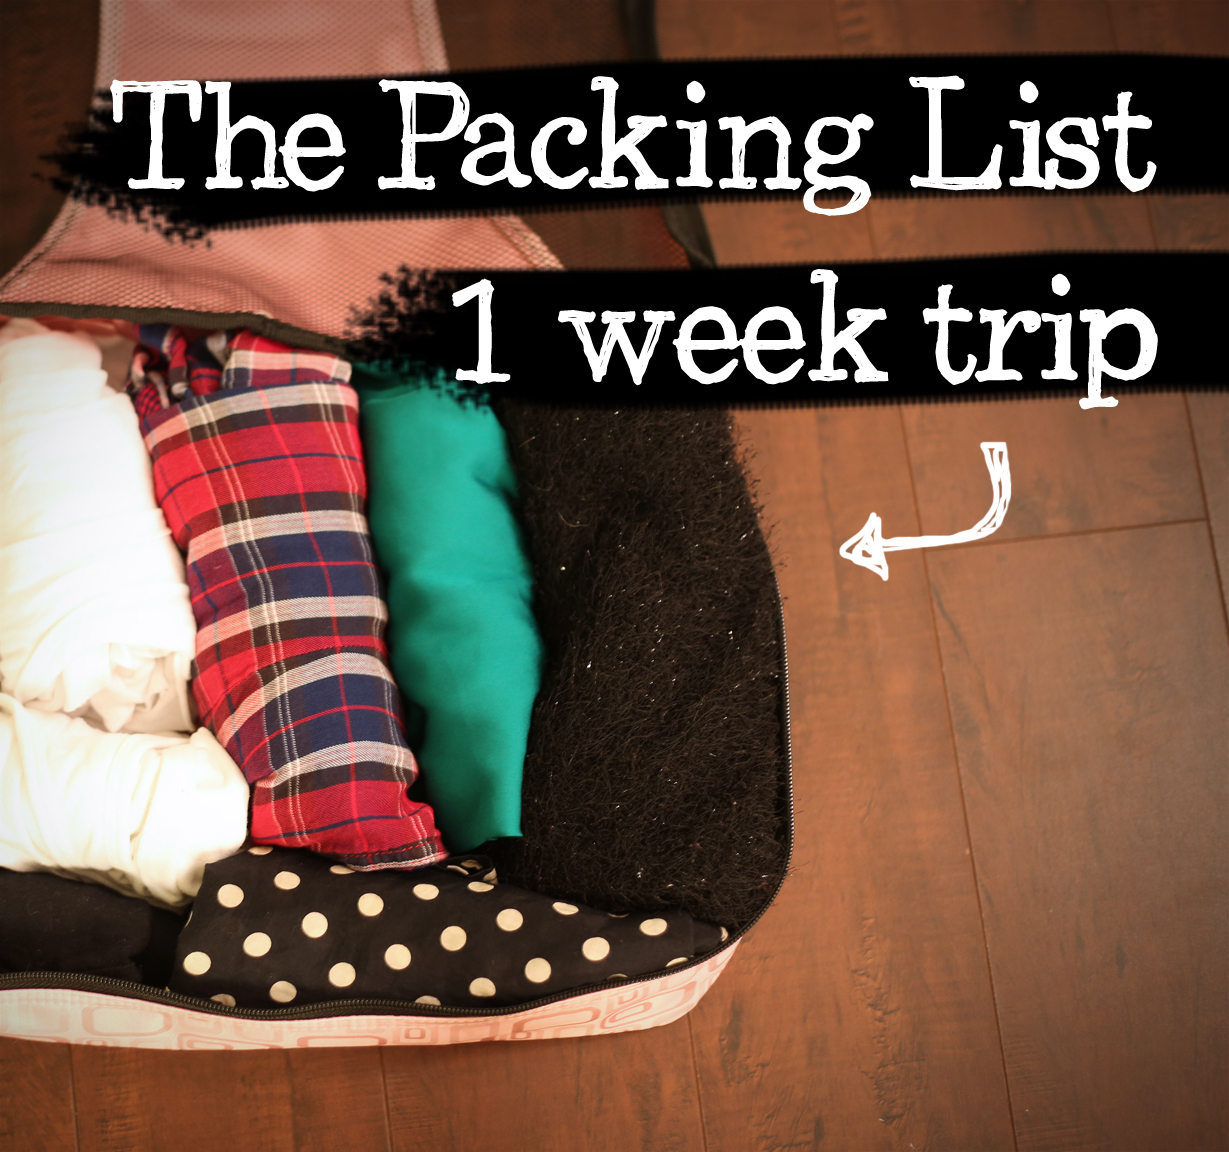 Travel Tips Packing List For A 1 Week Trip From Head To Toe